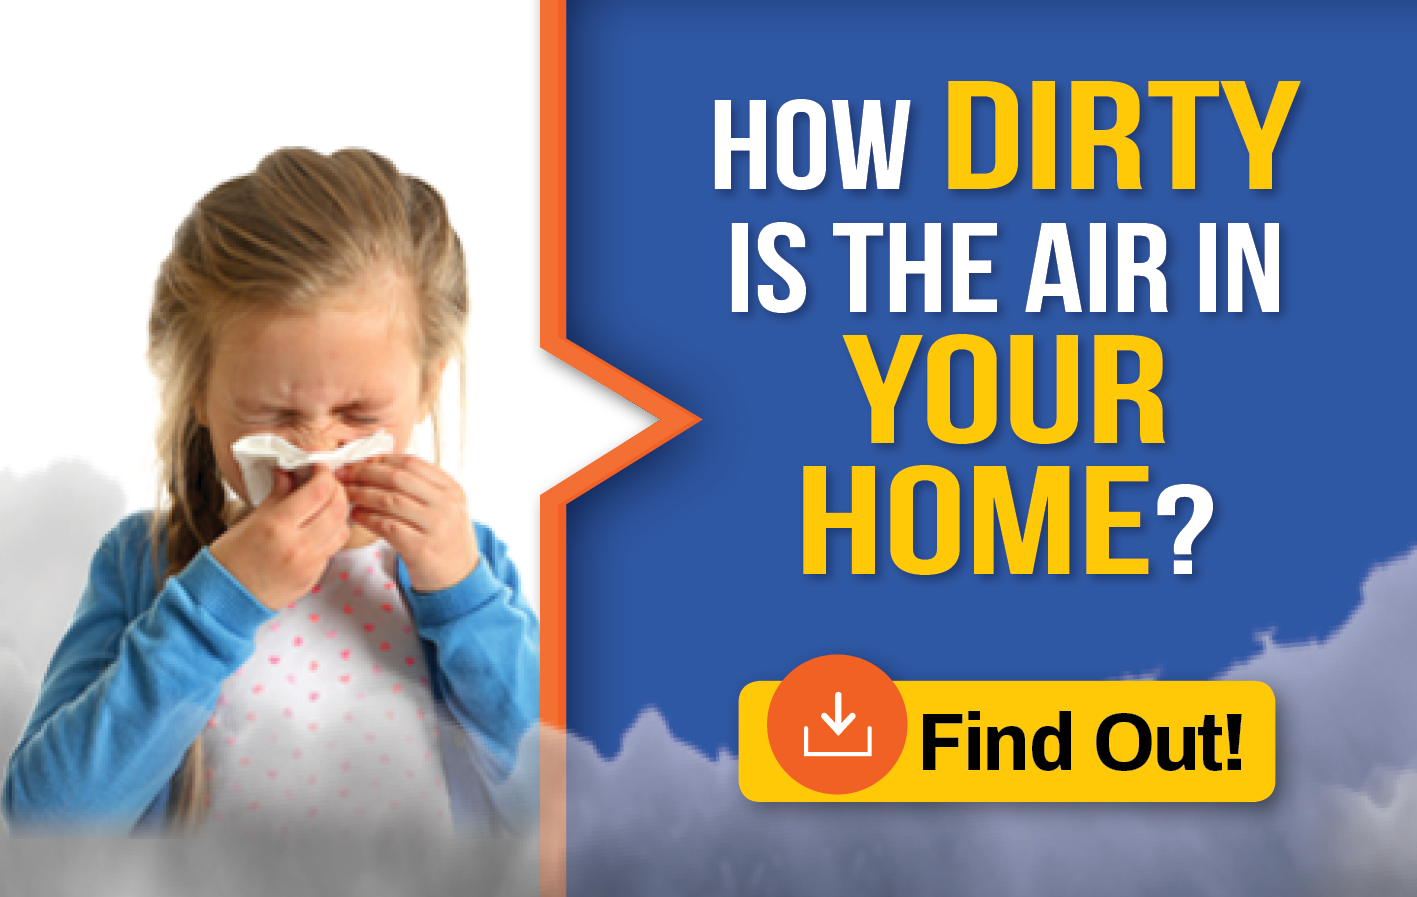 Is The Air In Your Home Dirty?